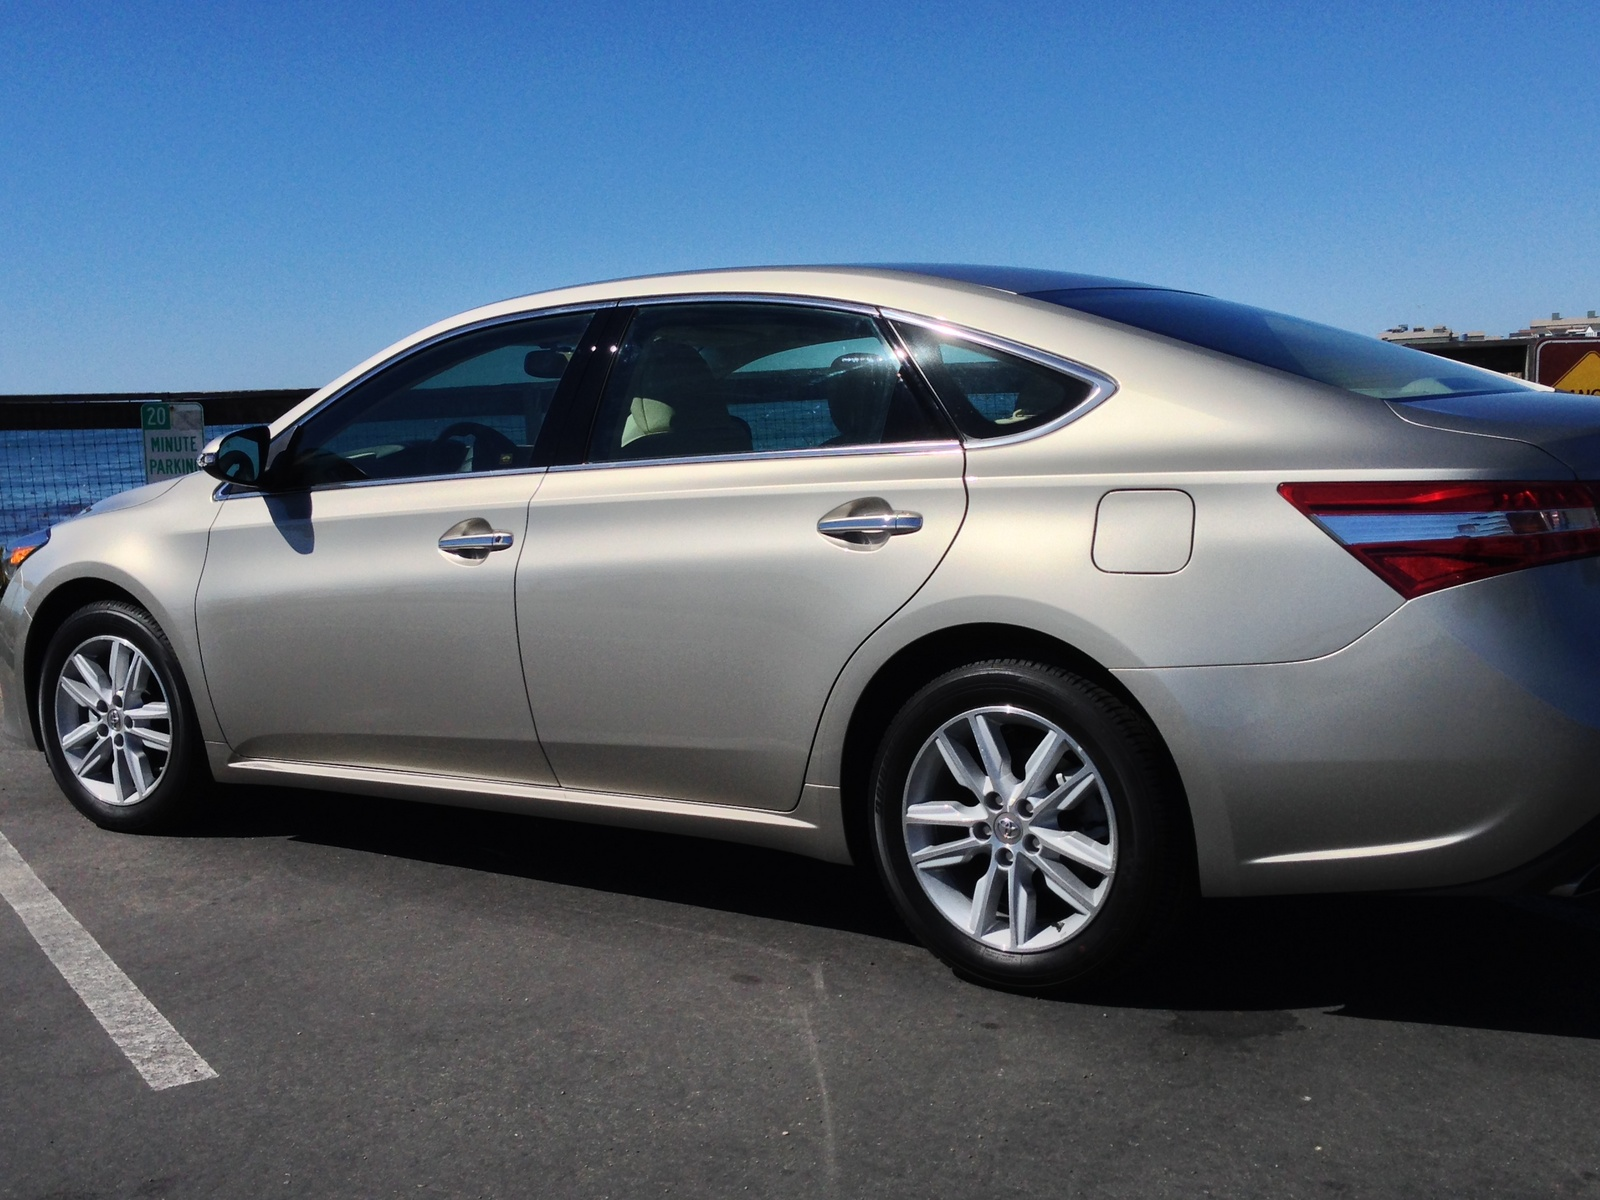 2014 toyota avalon review ratings specs prices and autos post. Black Bedroom Furniture Sets. Home Design Ideas